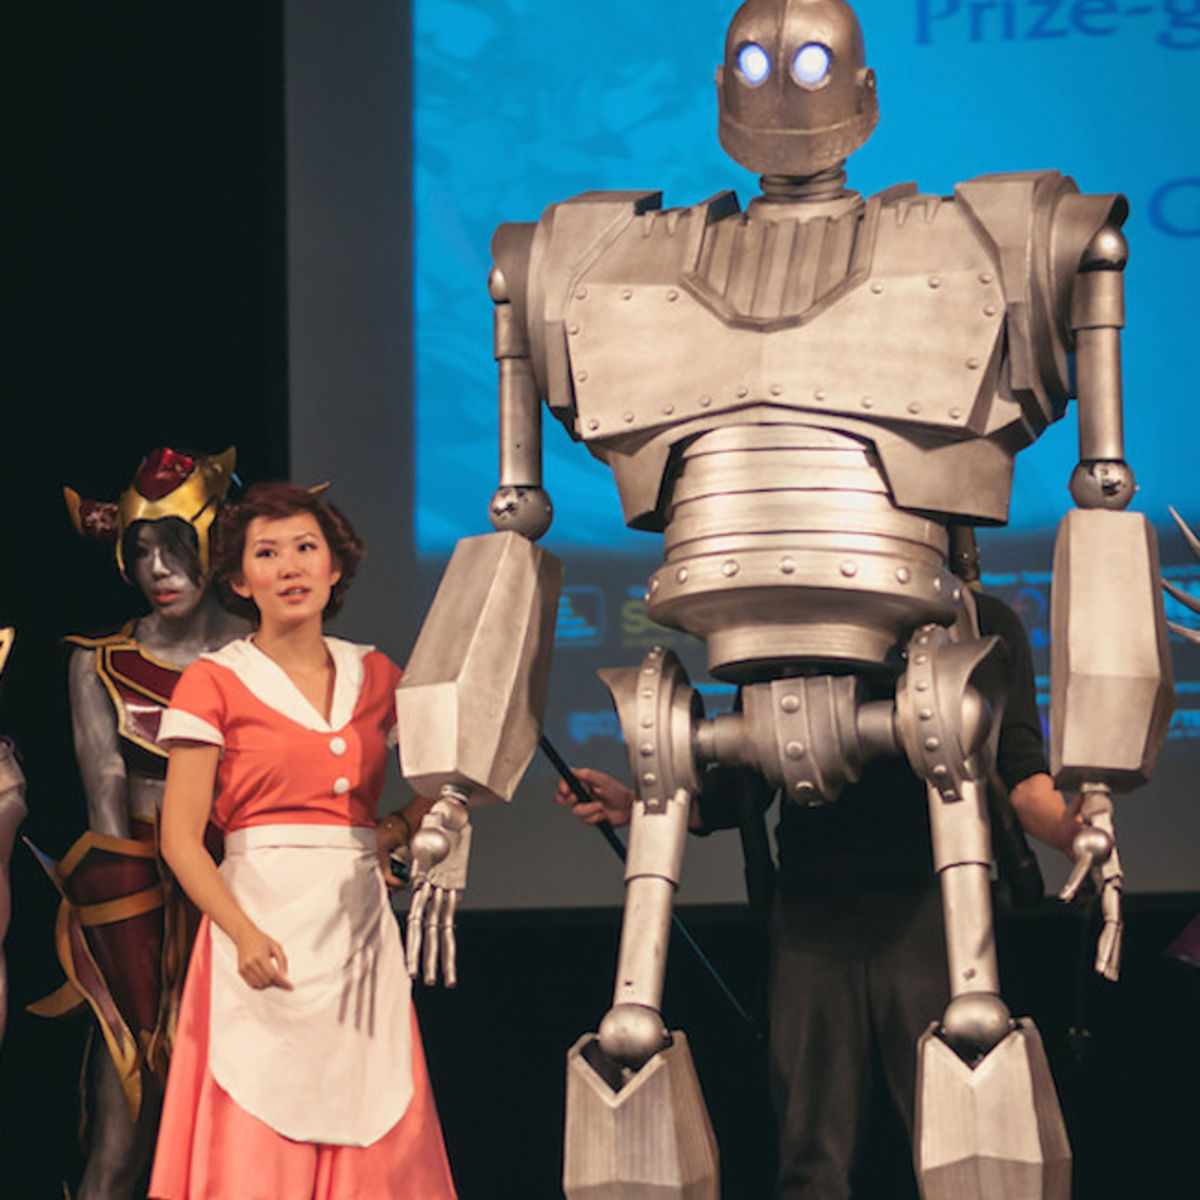 iron-giant-cosplay.jpg